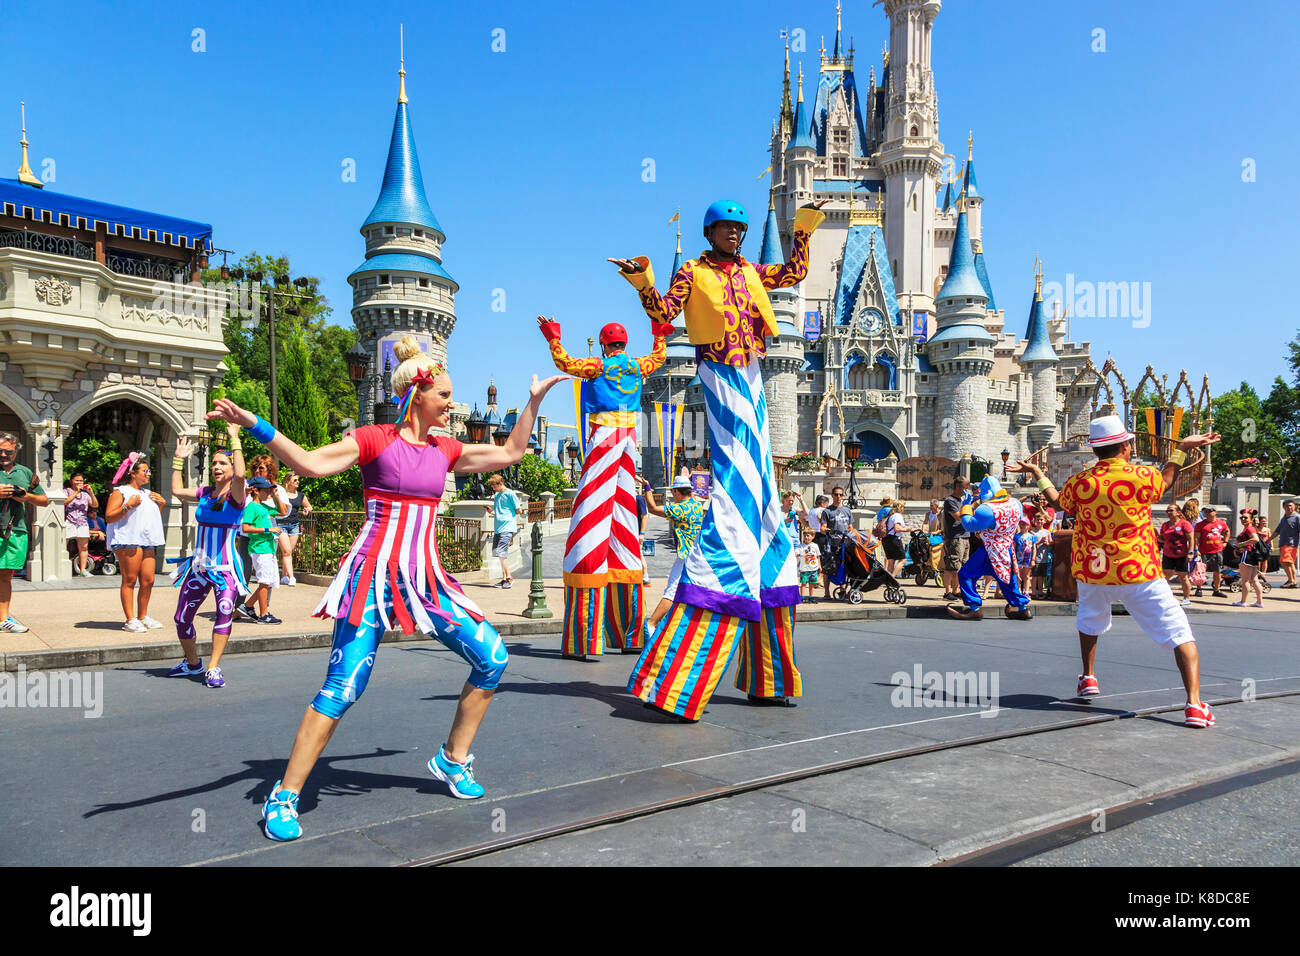 Animation de rue à Walt Disney's Magic Kingdom Theme Park, Orlando, Floride, USA Photo Stock